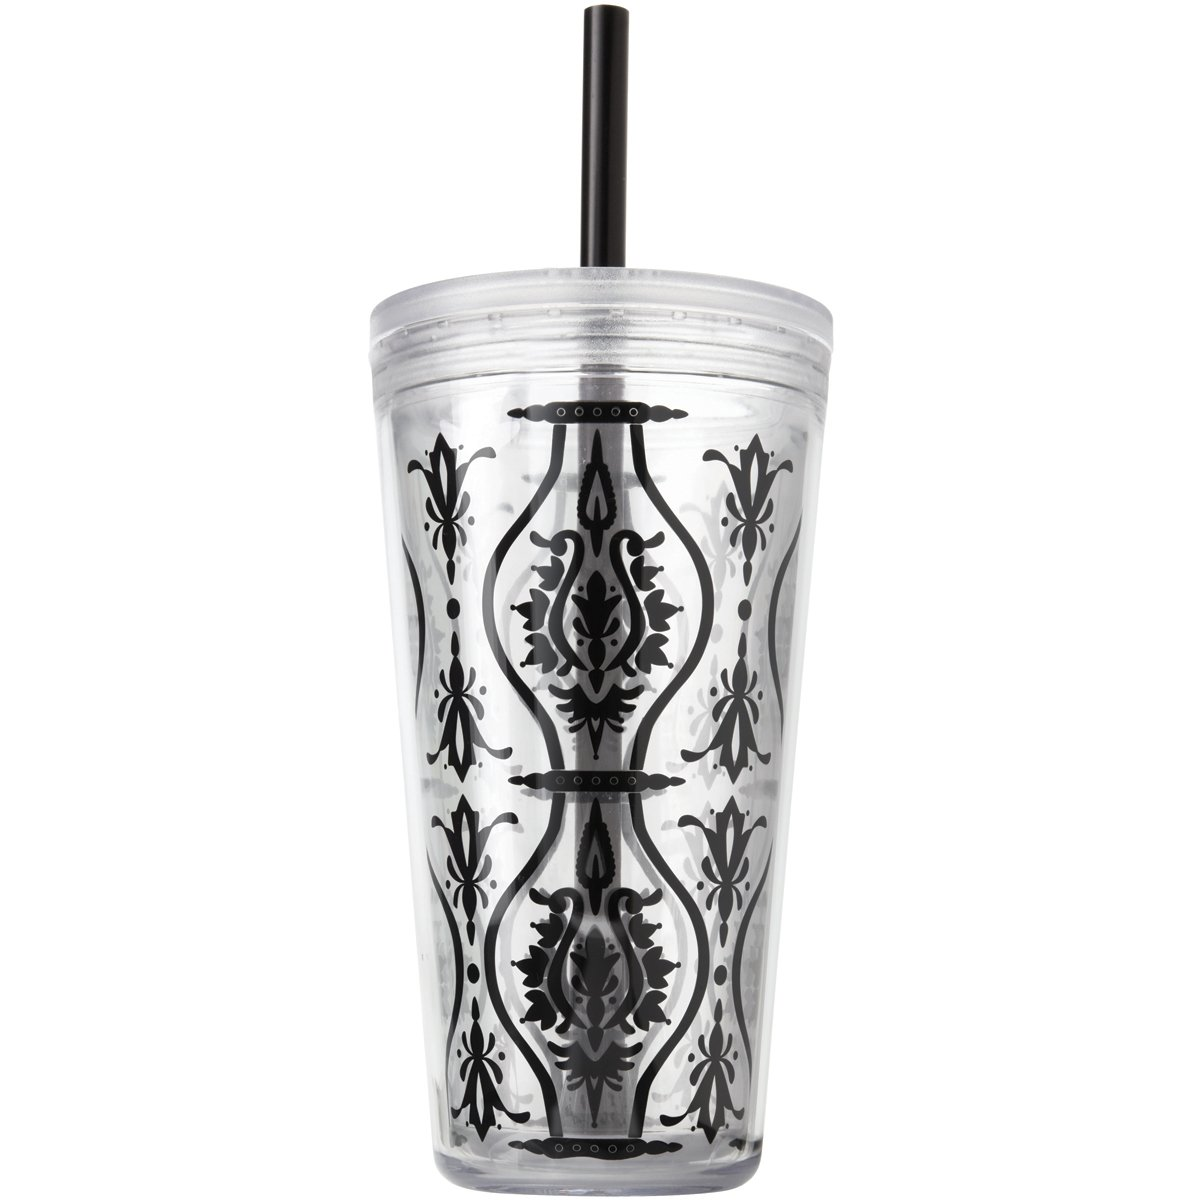 Copco 2510-0261 Minimus Double Wall Insulated Tumbler with Removable Straw, 24-Ounce, Damask Black